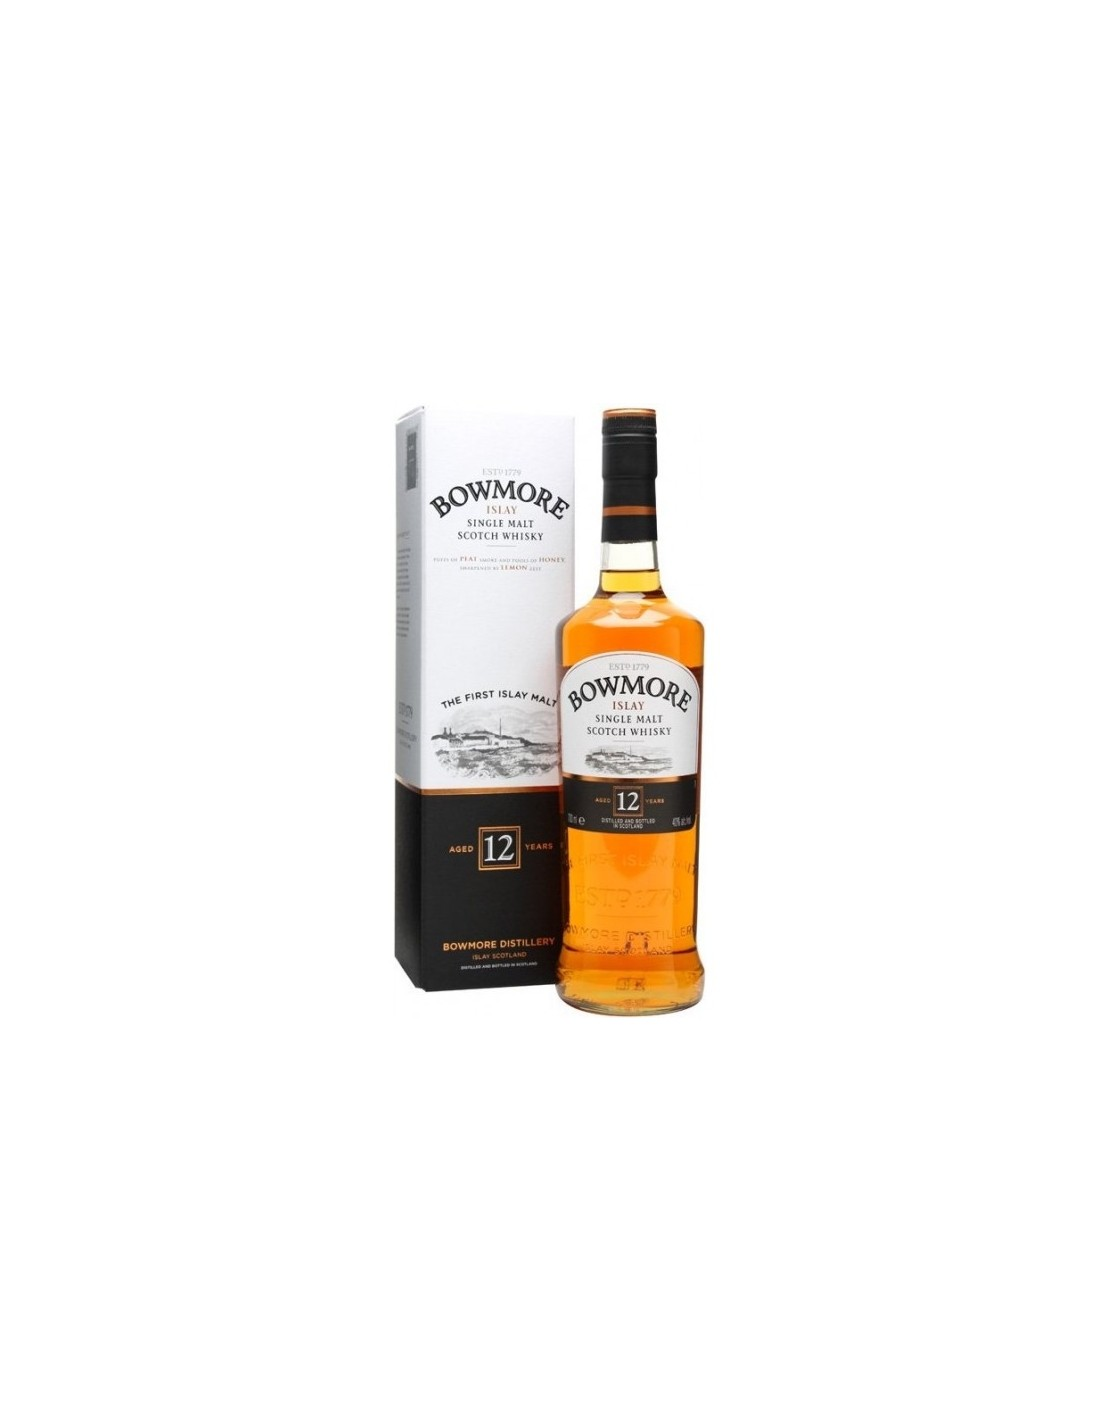 Whisky Single Malt Bowmore, 12 ani, 40% alc., 0.7L, Scotia